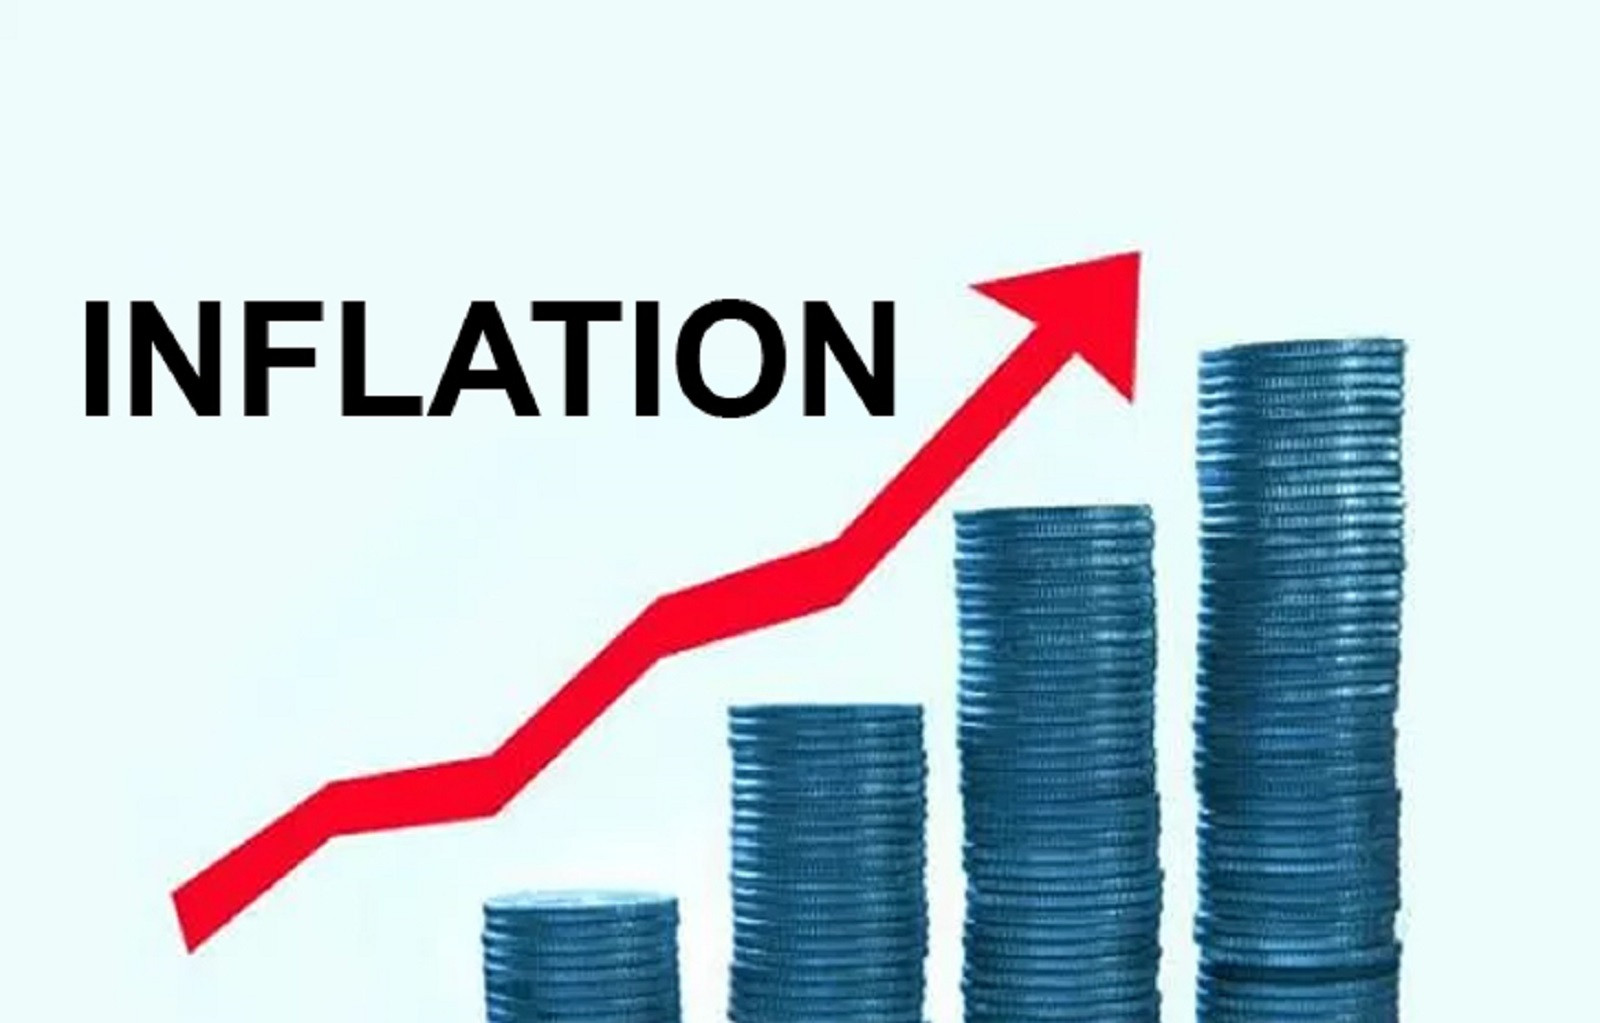 NIGERIA'S INFLATION HITS 14.23 PERCENT AS FOOD PRICES INCREASES